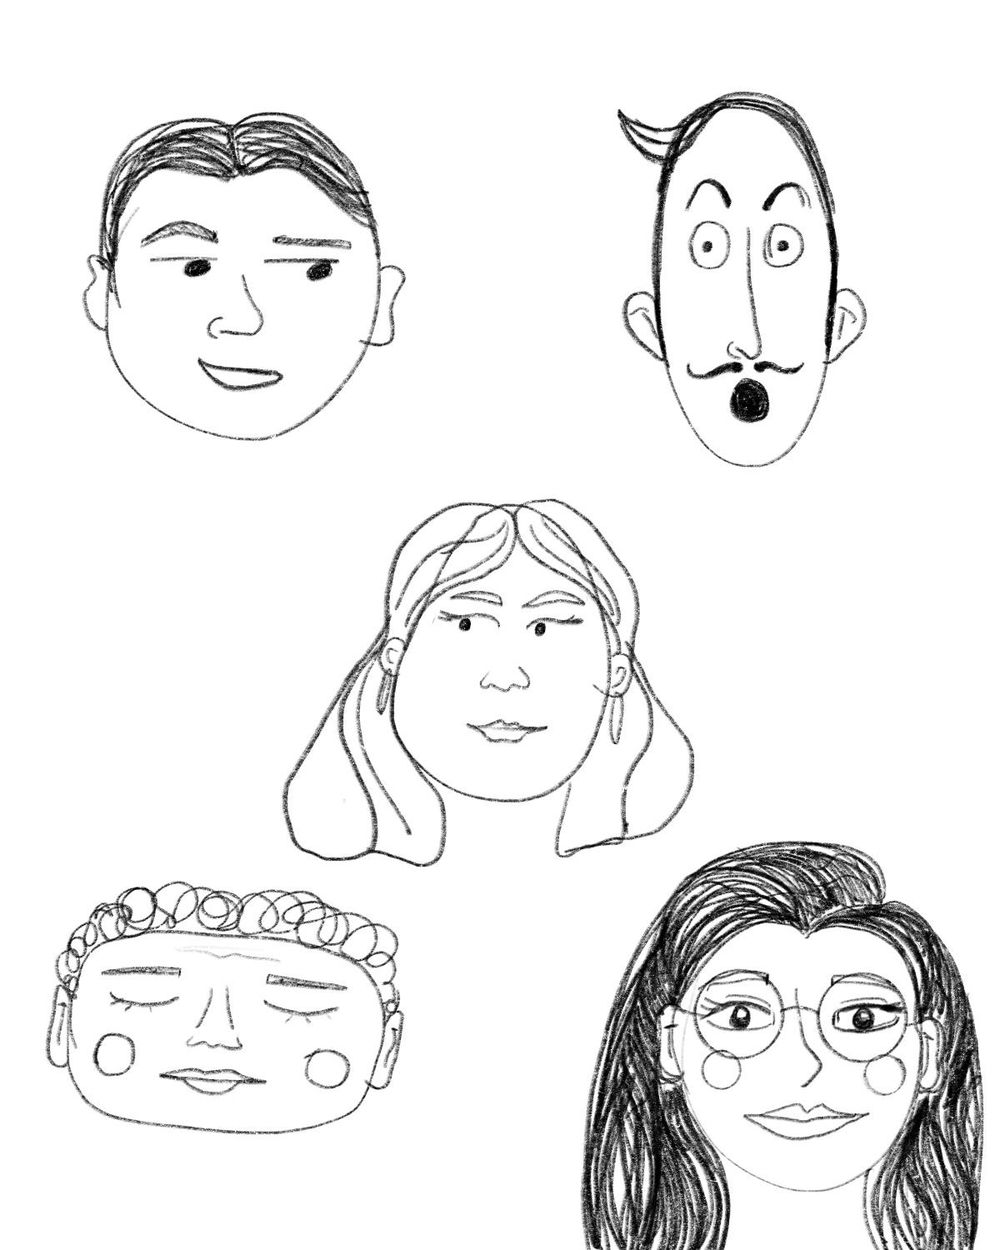 Digital Portrait for Fun with Faces - image 4 - student project